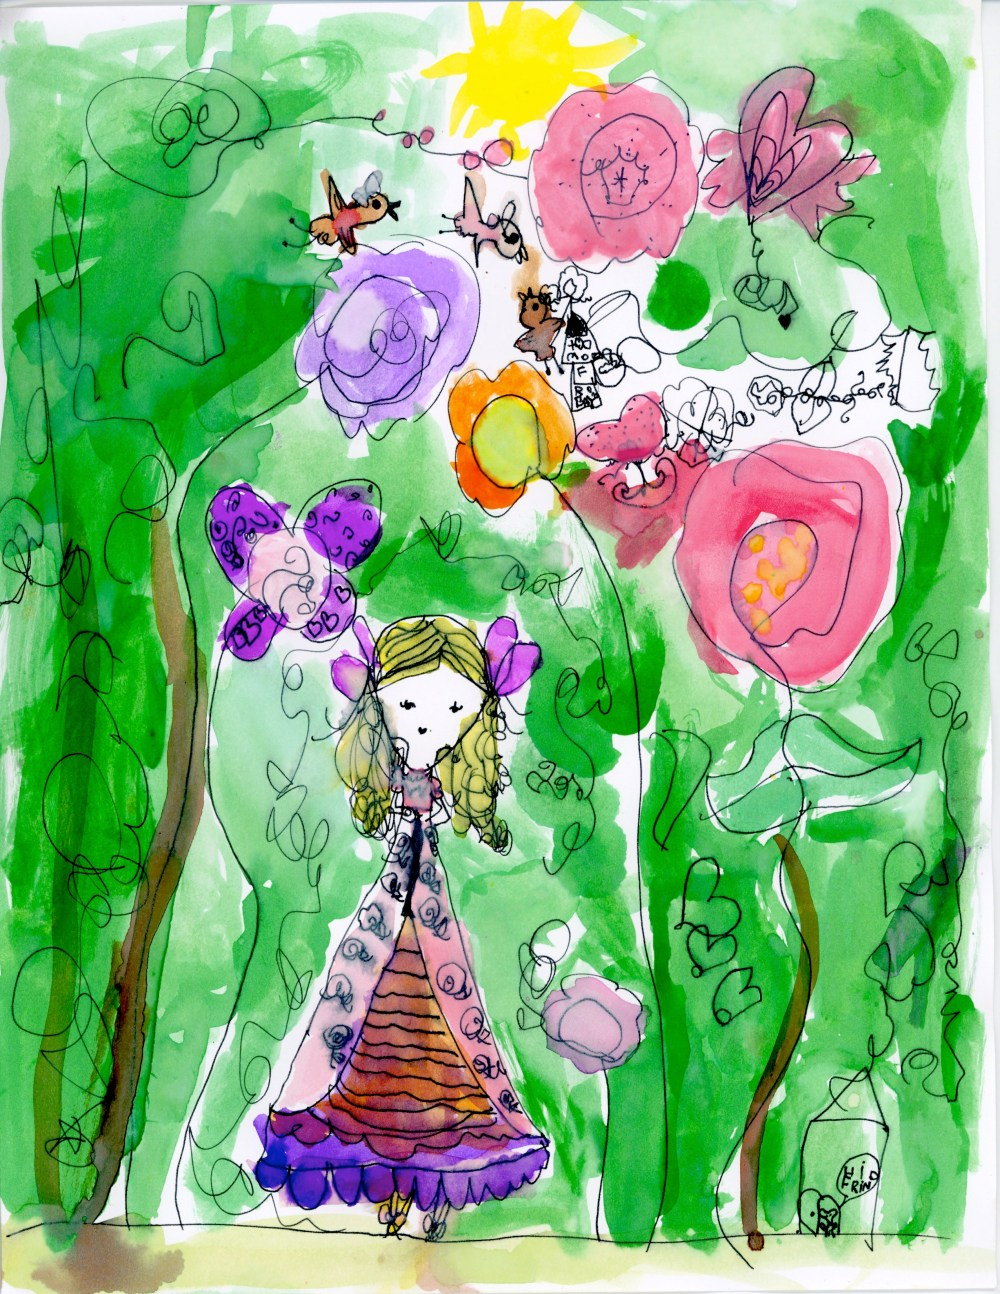 Colorful Girl in Forest by Paloma, age 6